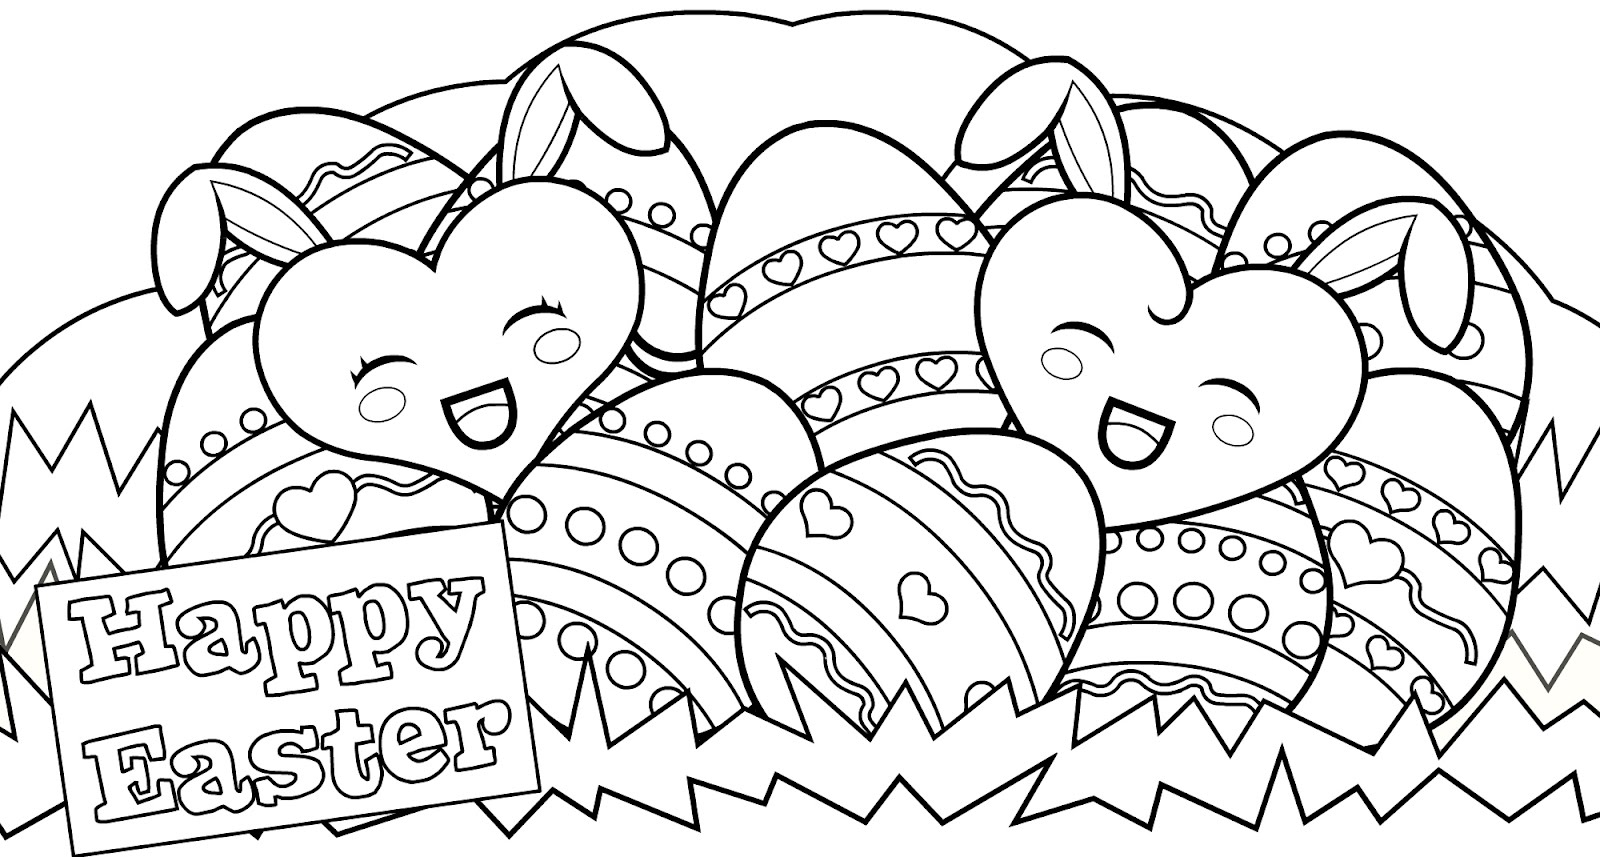 Free Easter Coloring Sheets Holiday Coloring Pages Coloring Pages For Easter